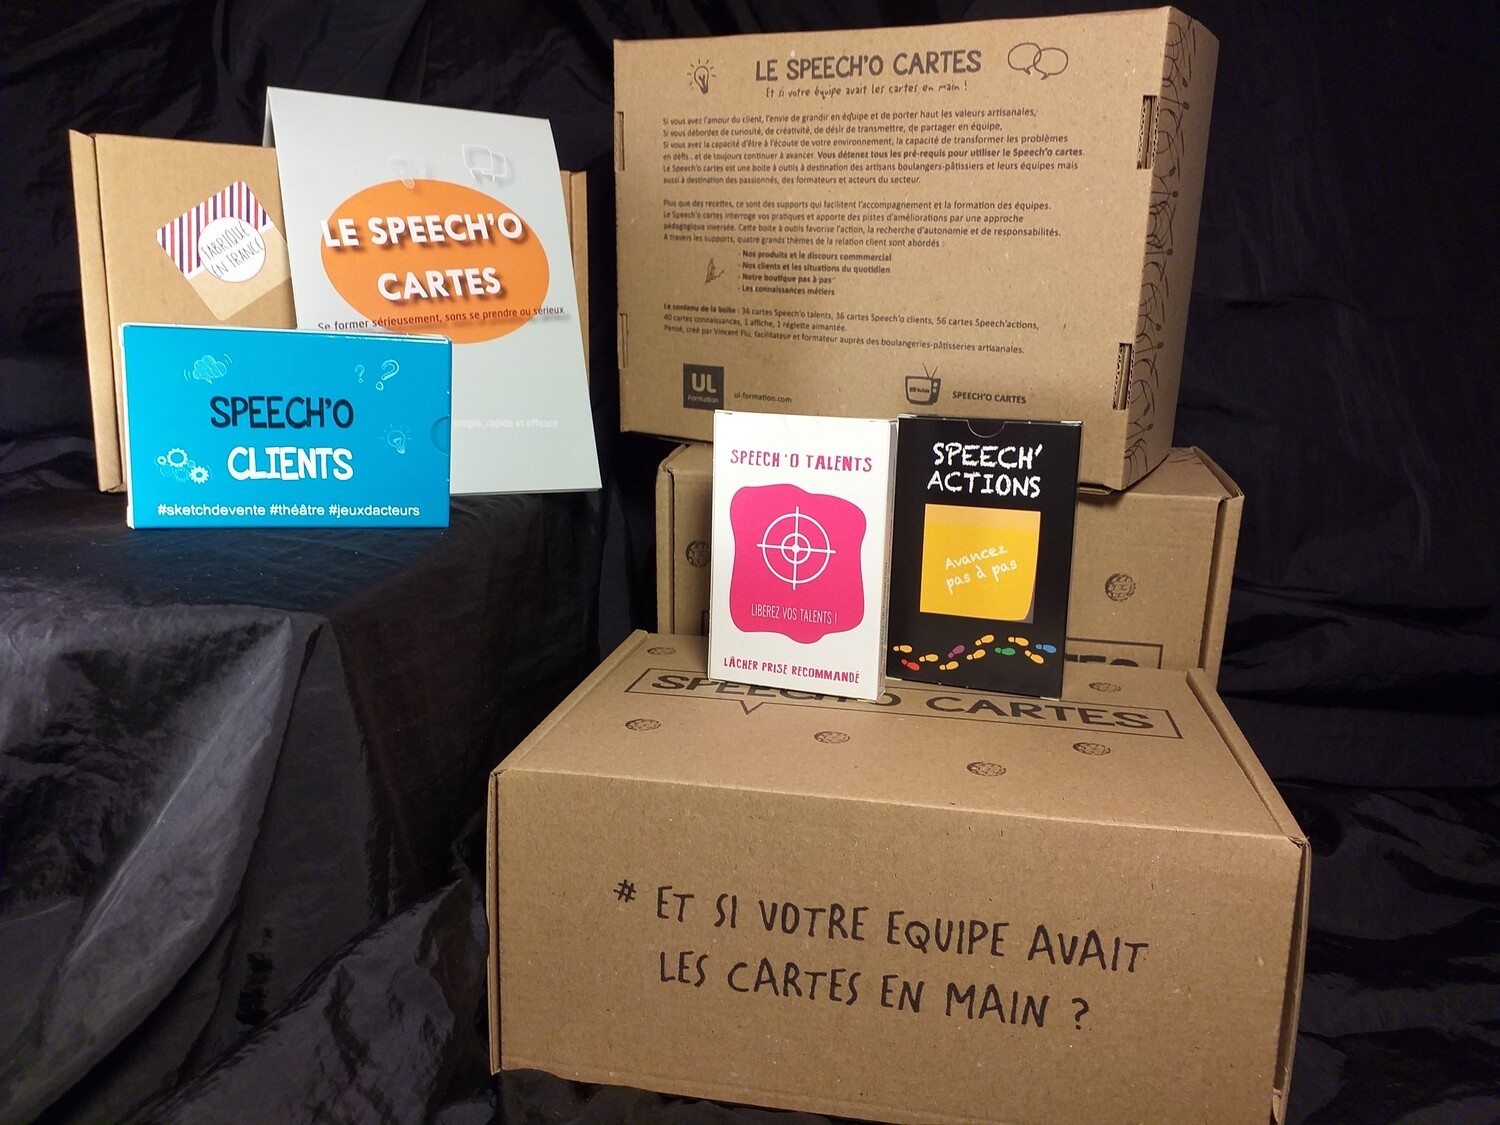 KIT COMPLET SPEECH'O CARTES